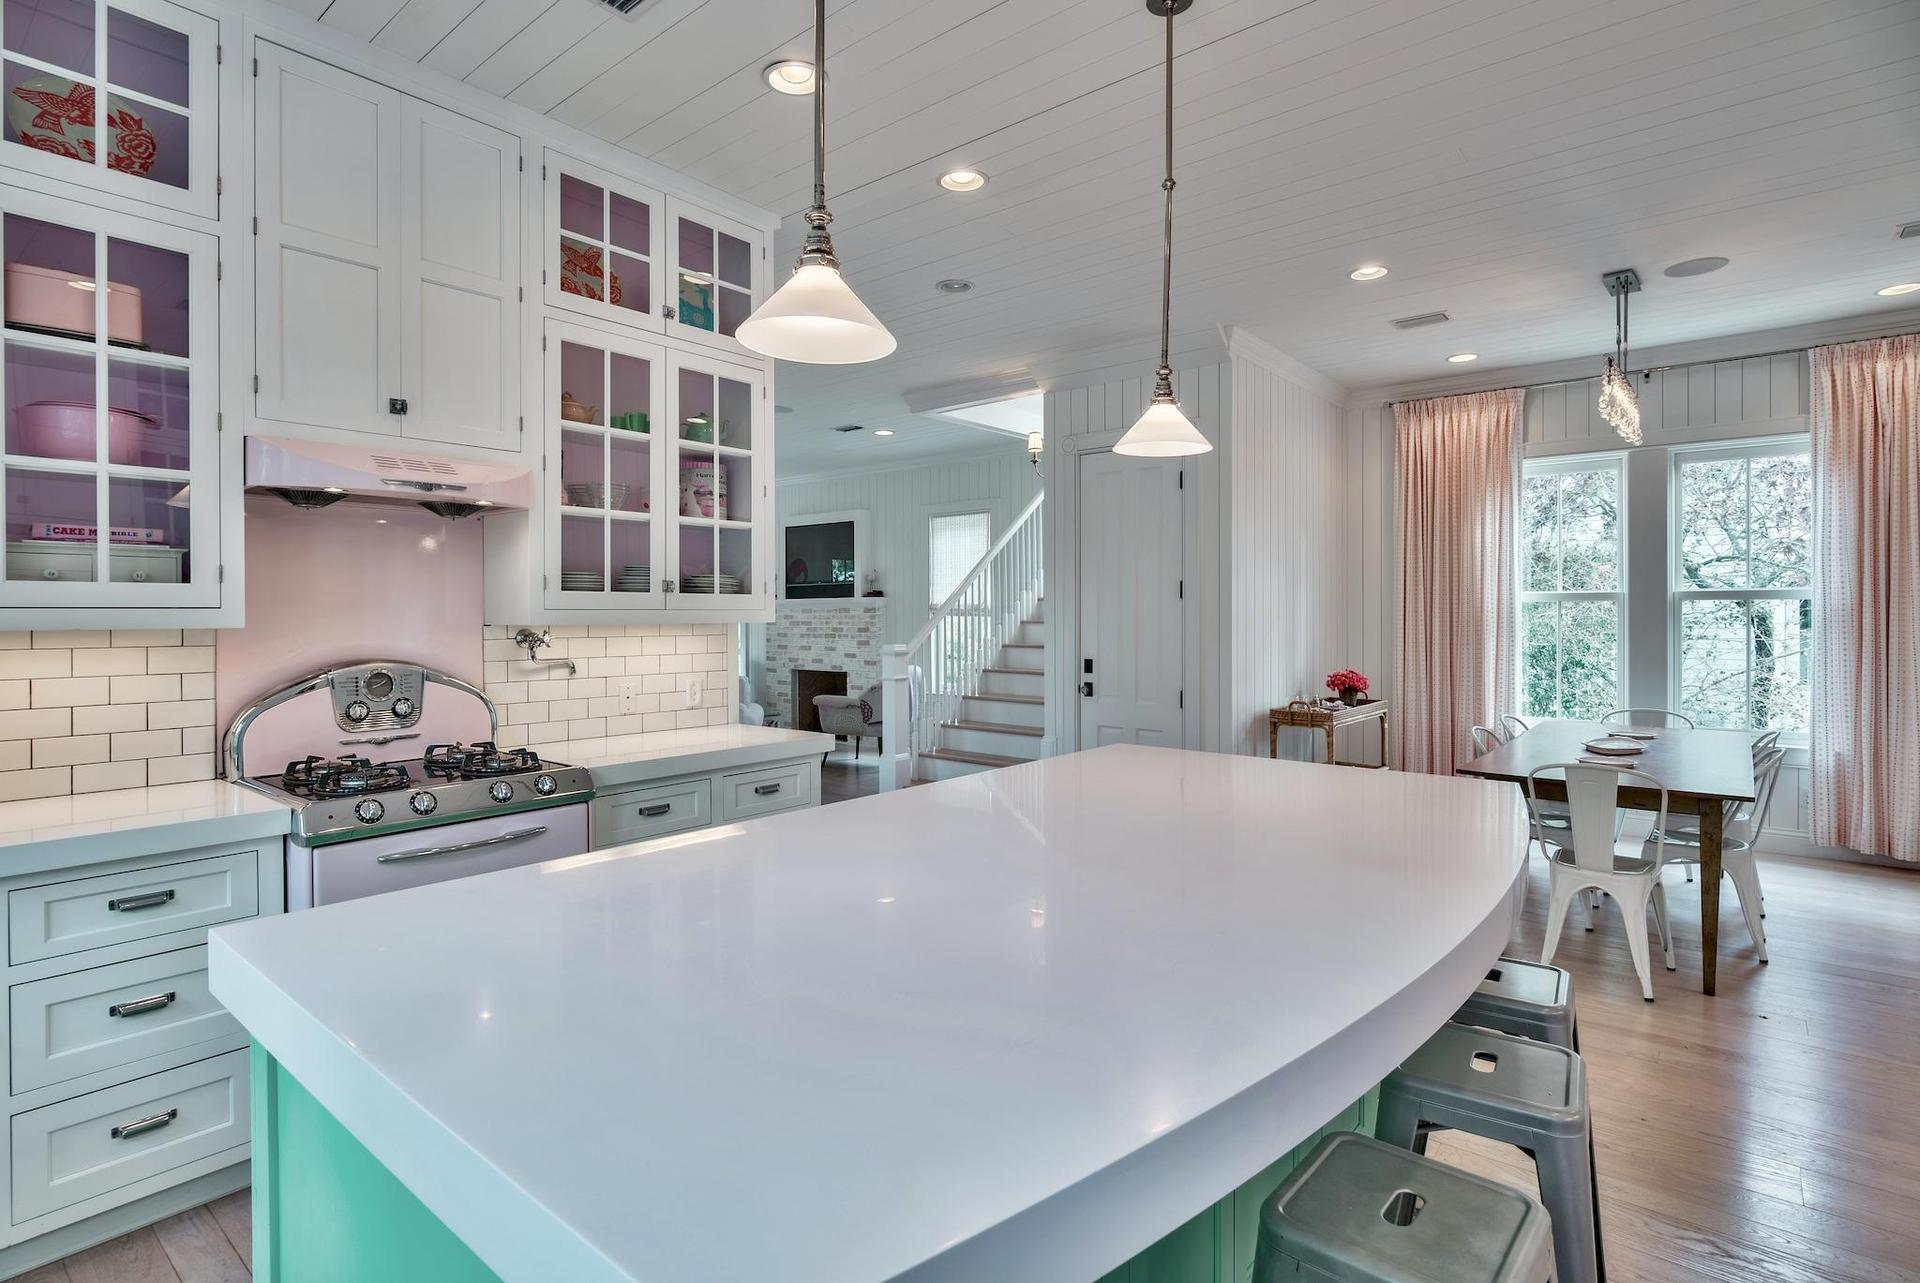 Gorgeous quartz counters are featured in the kitchen